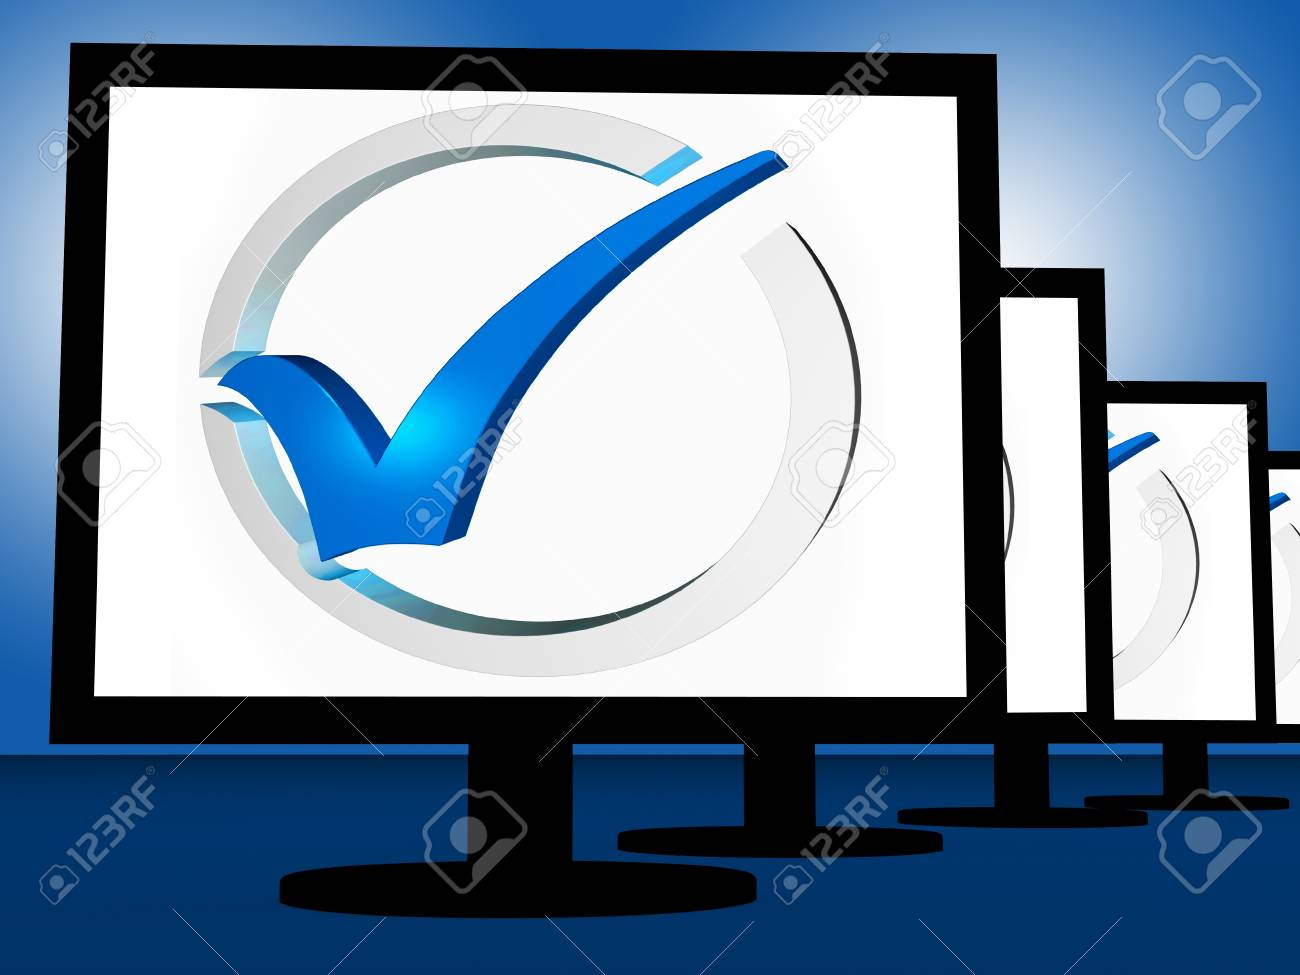 Check Mark On Monitors Shows User's Satisfaction Or Acceptance Stock Photo - 18407178